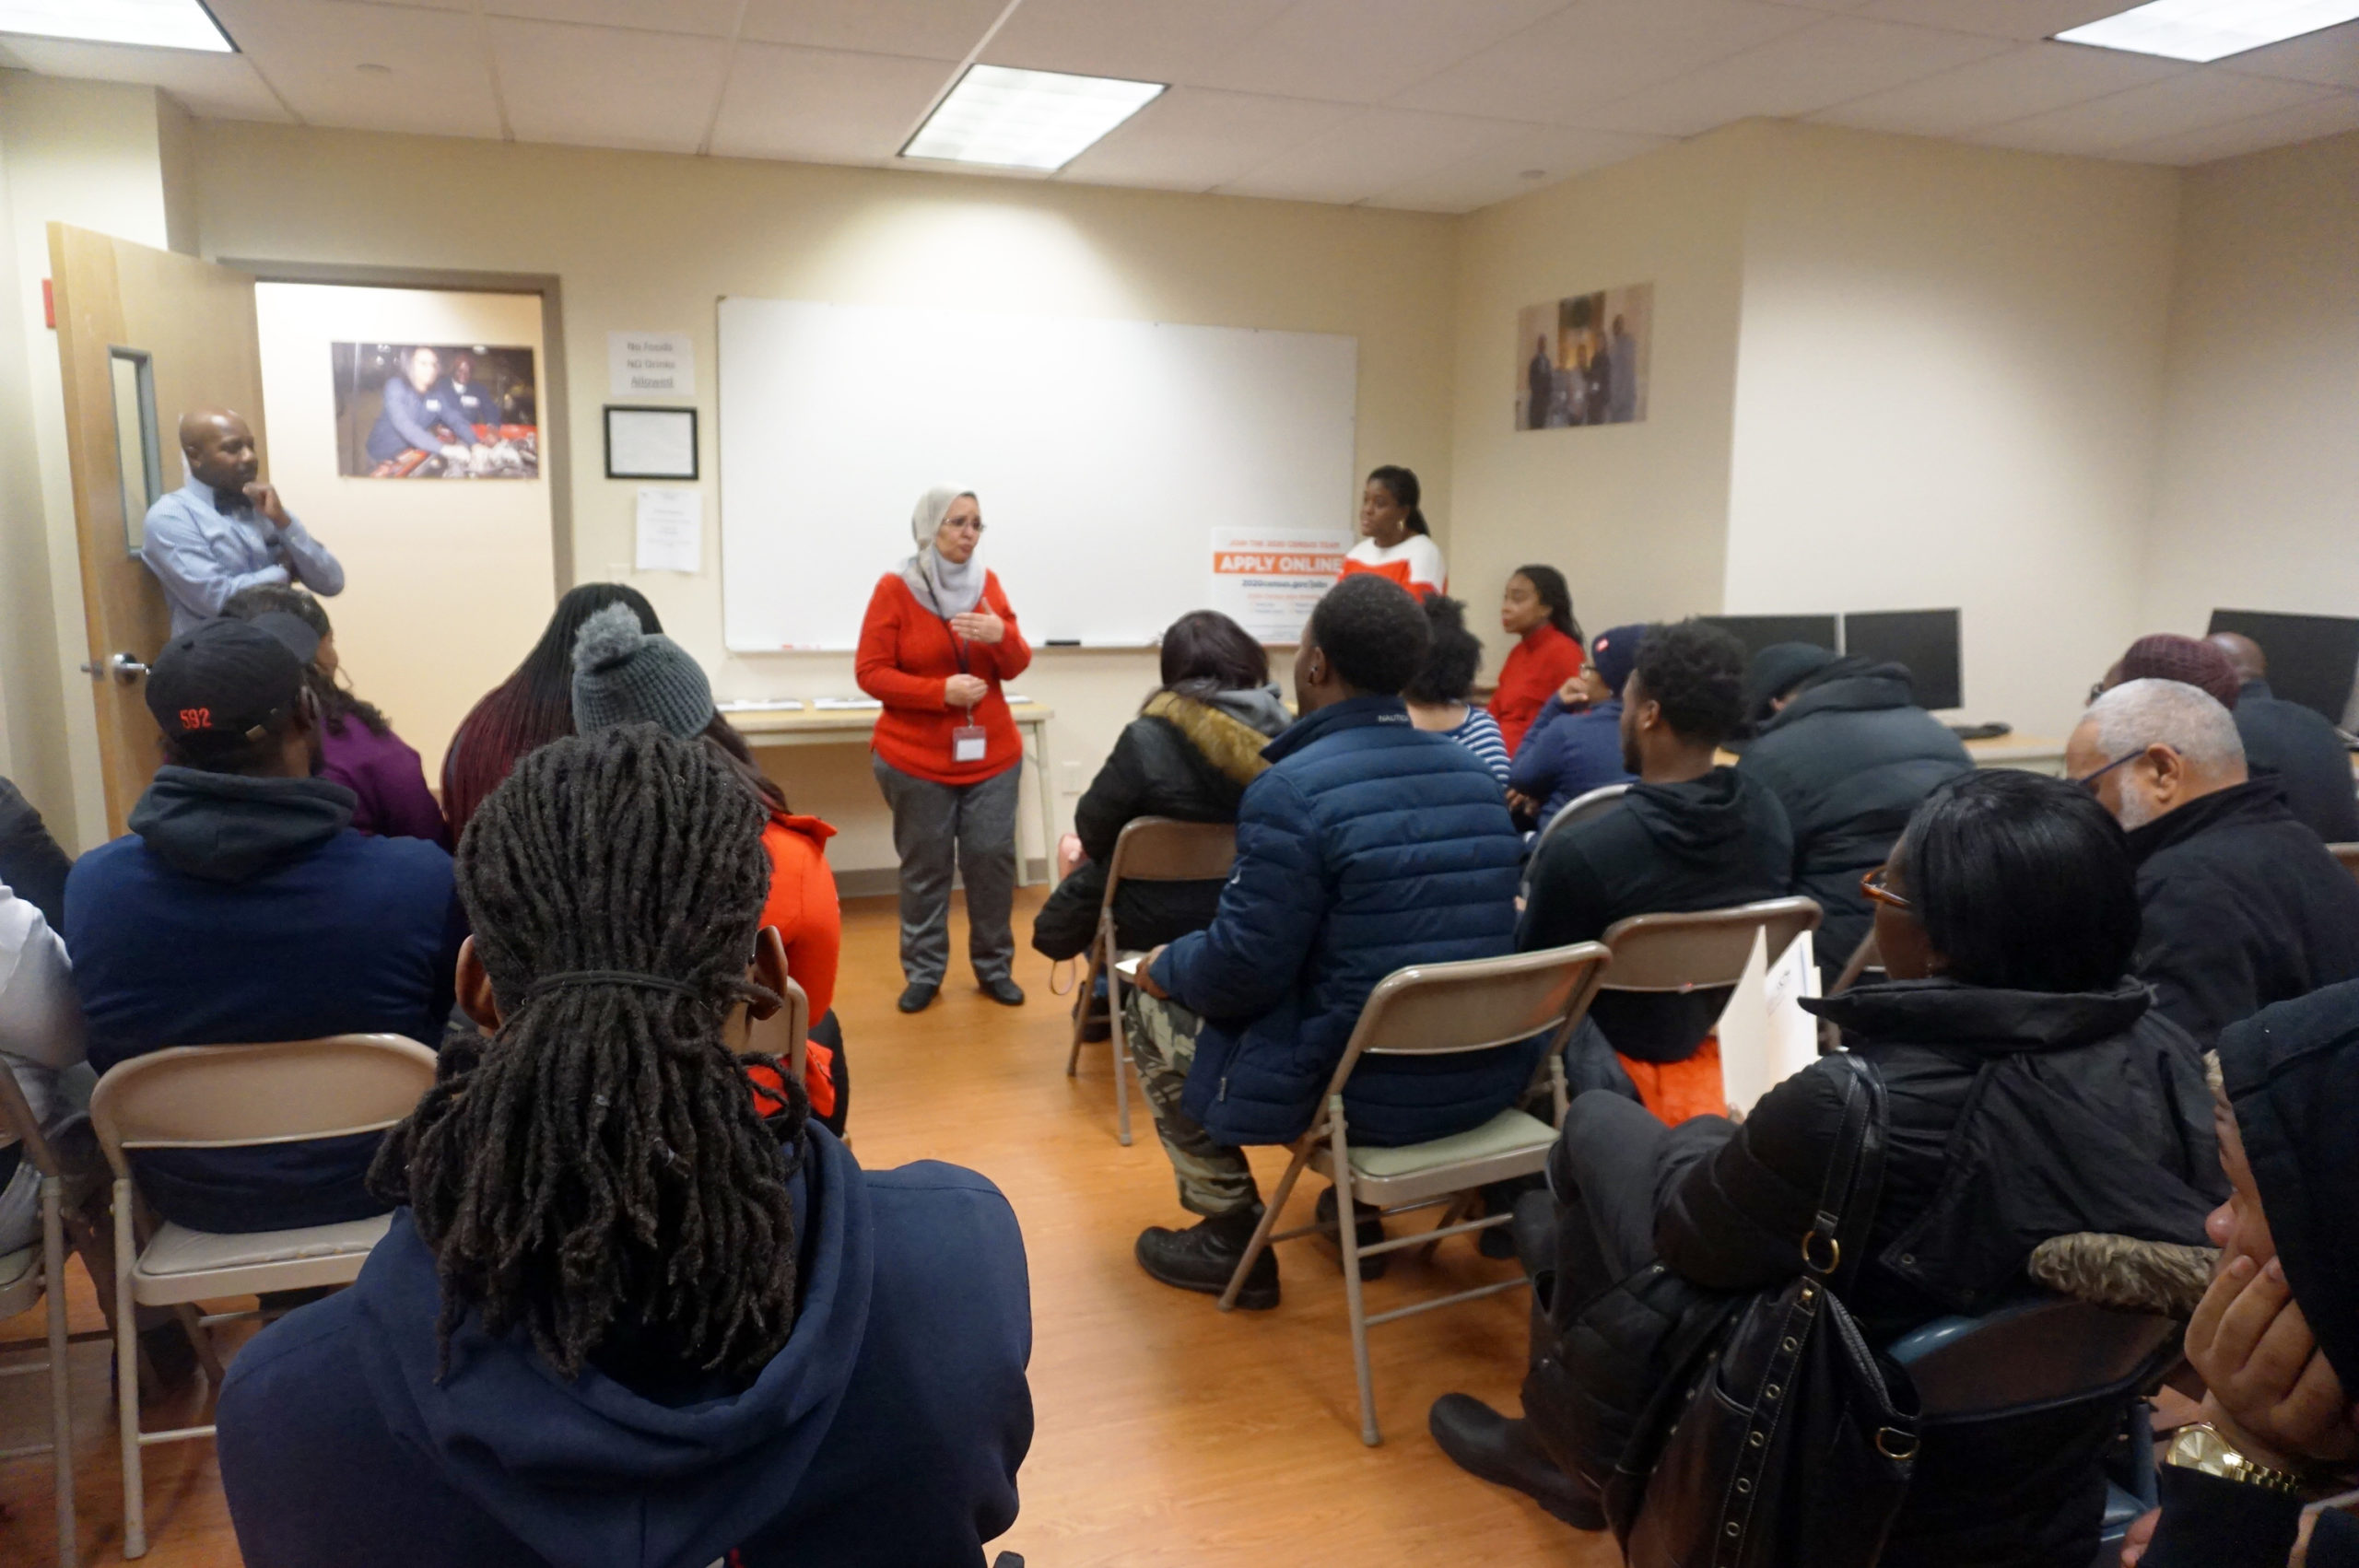 Read more about the article NCCTI Hosts Open House for Prospective Students